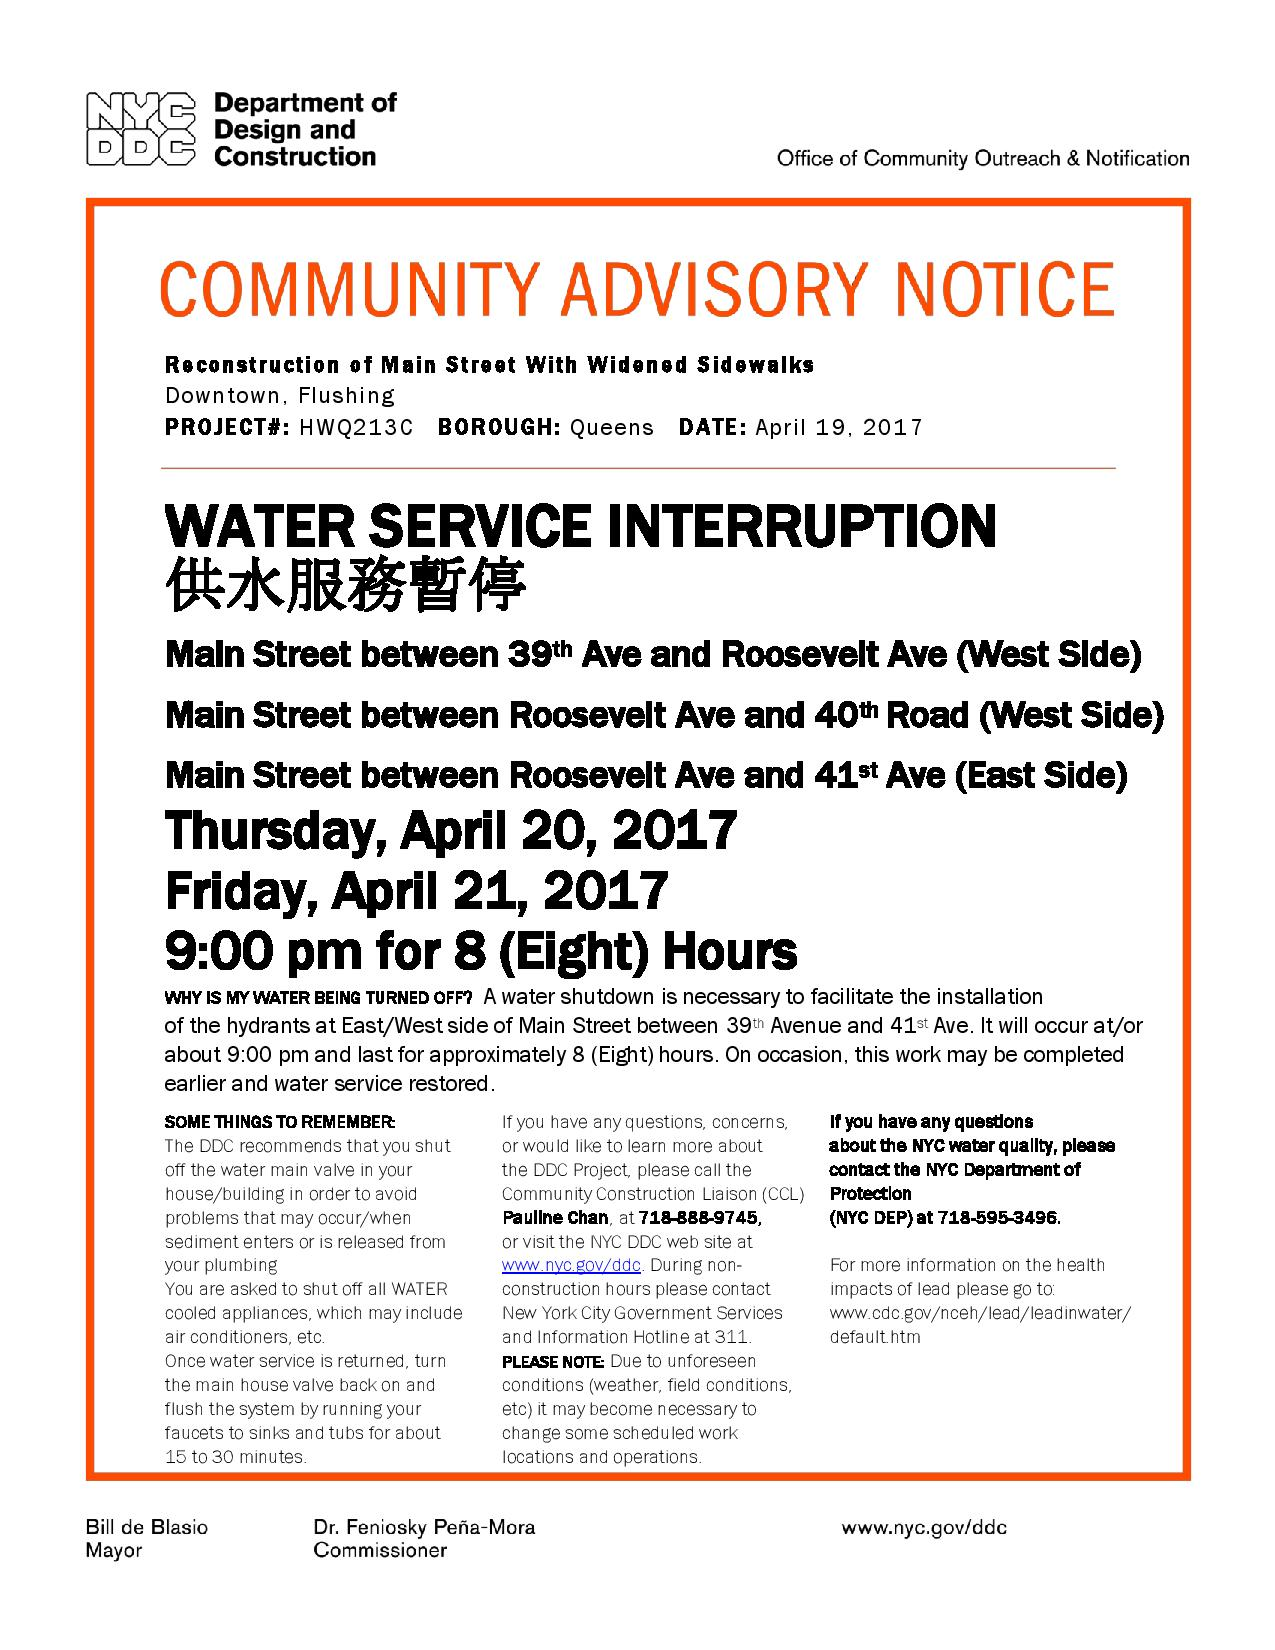 HWQ213C Community Advisory Notice for Water Shut Down - Apr 20-21 2017-page-001